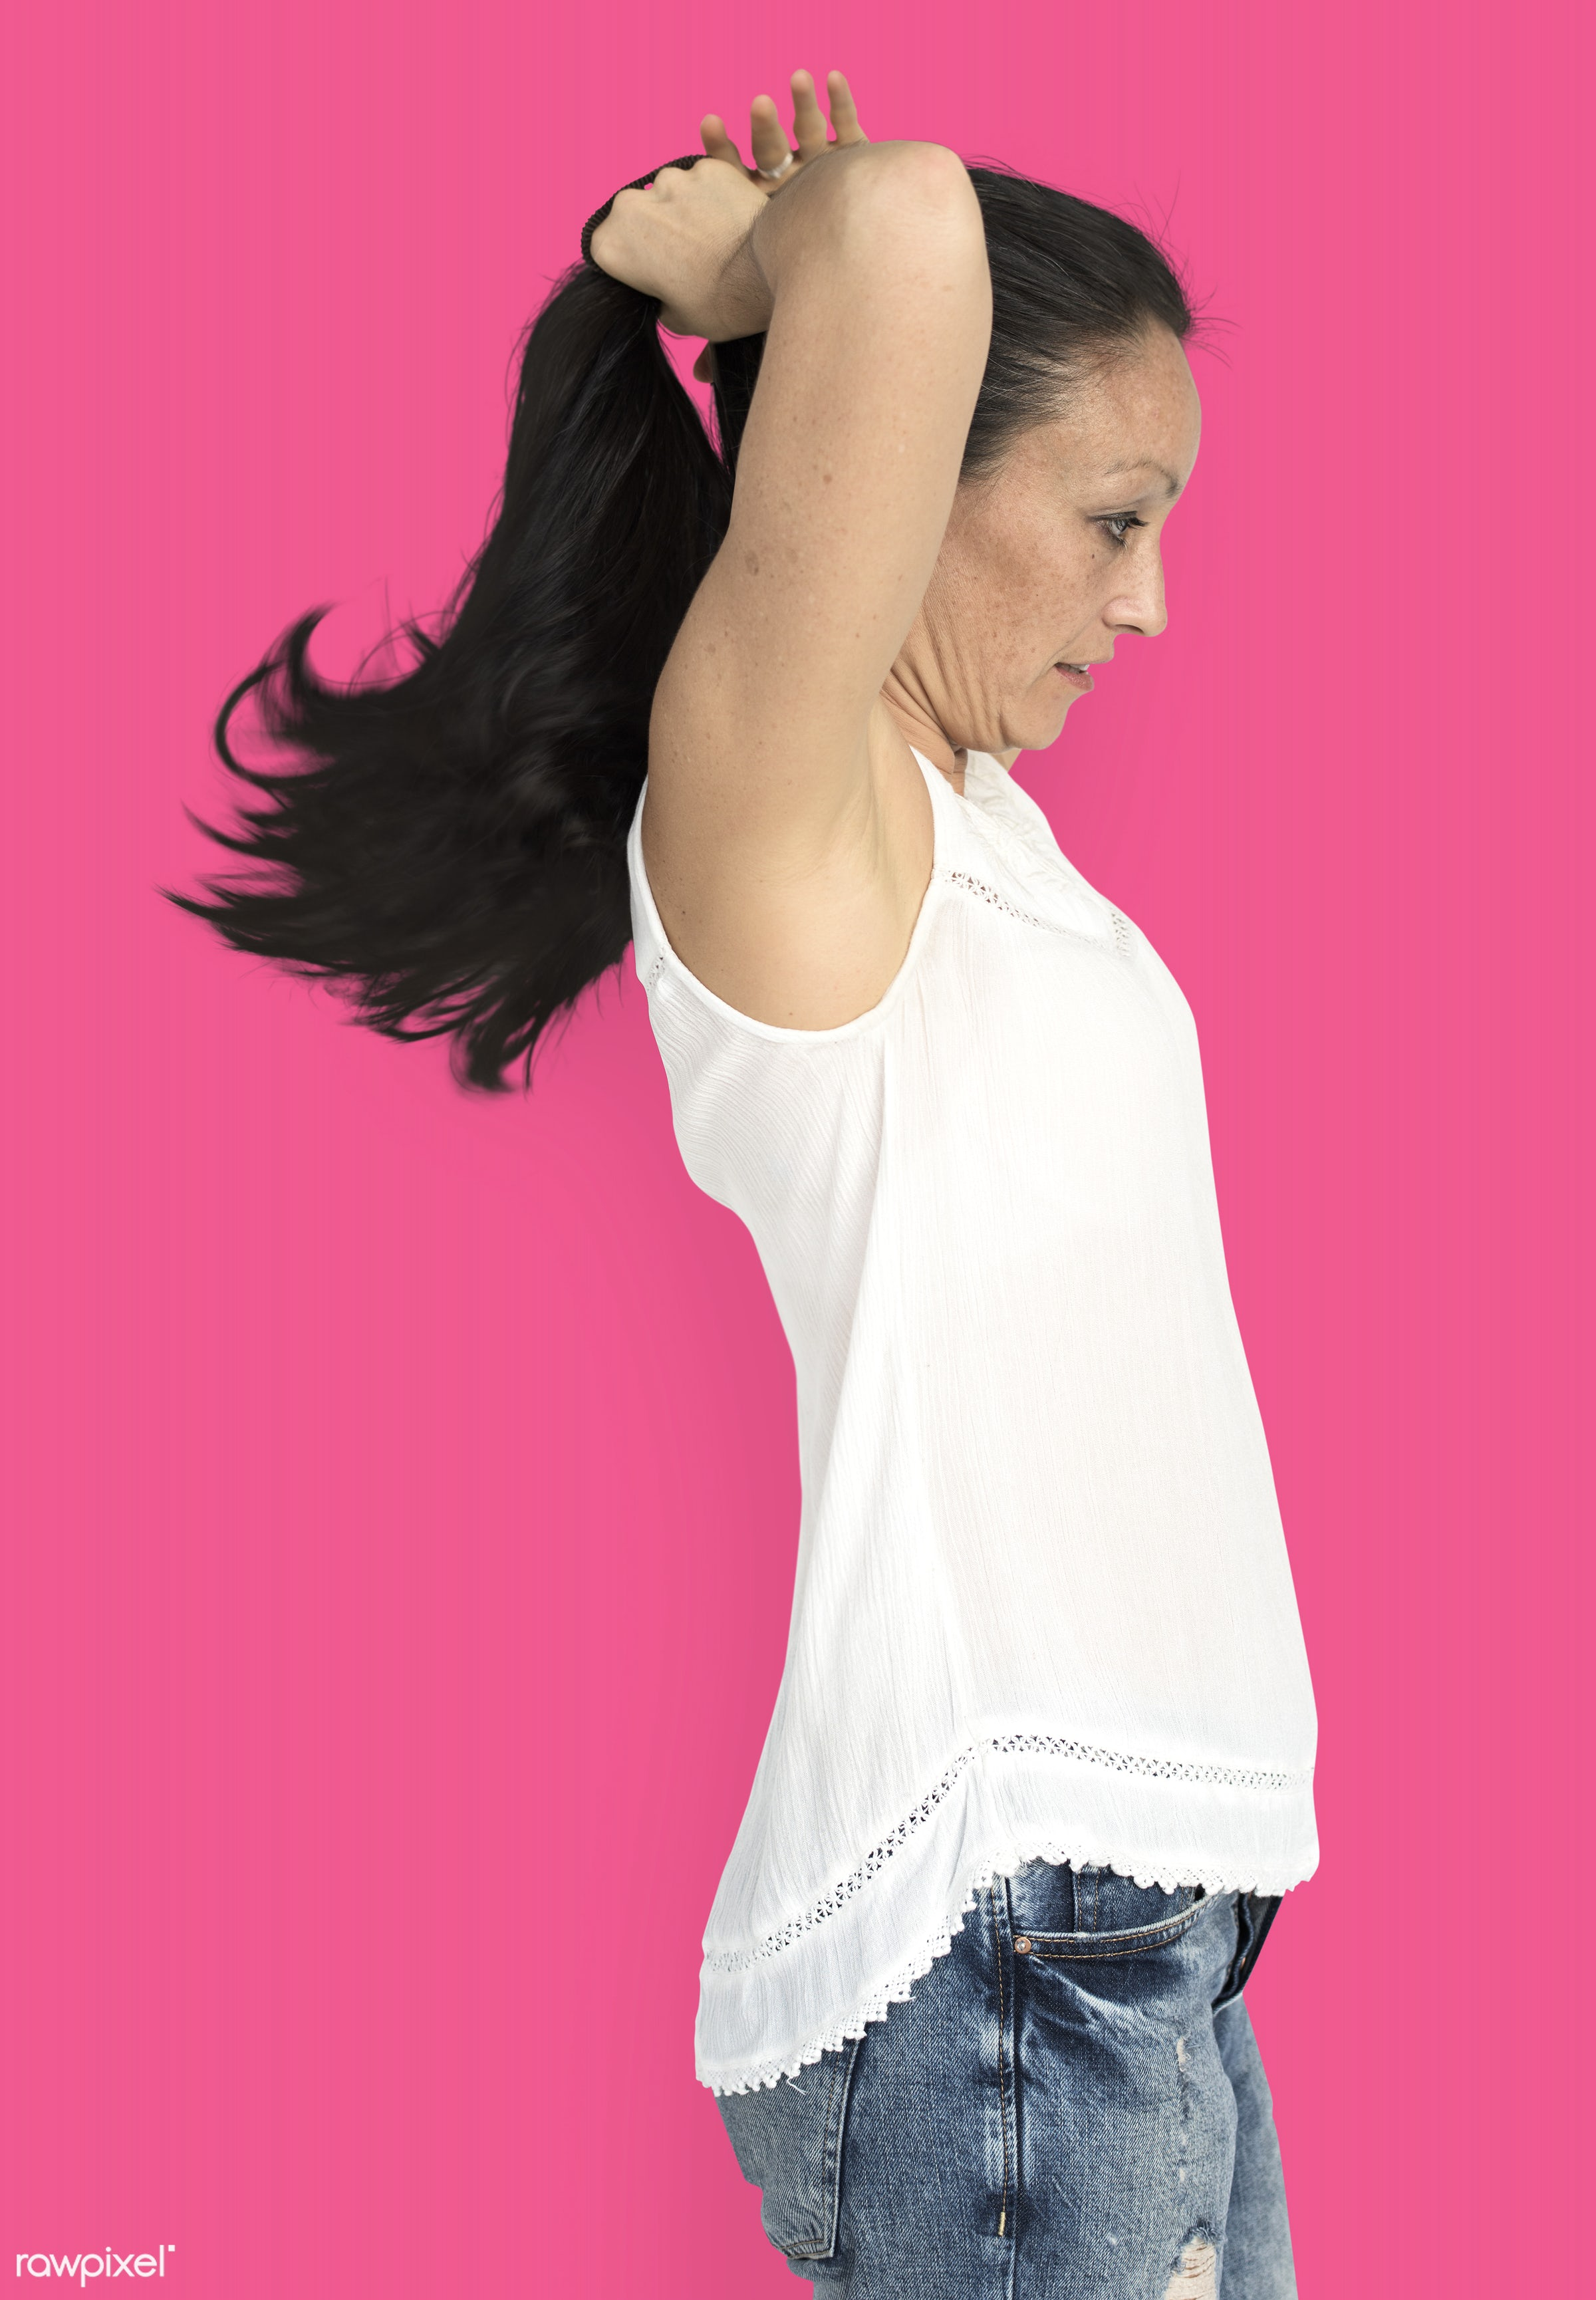 studio, model, person, people, race, style, solo, woman, lifestyle, casual, pink, feminism, hair, isolated, gesture, posing...